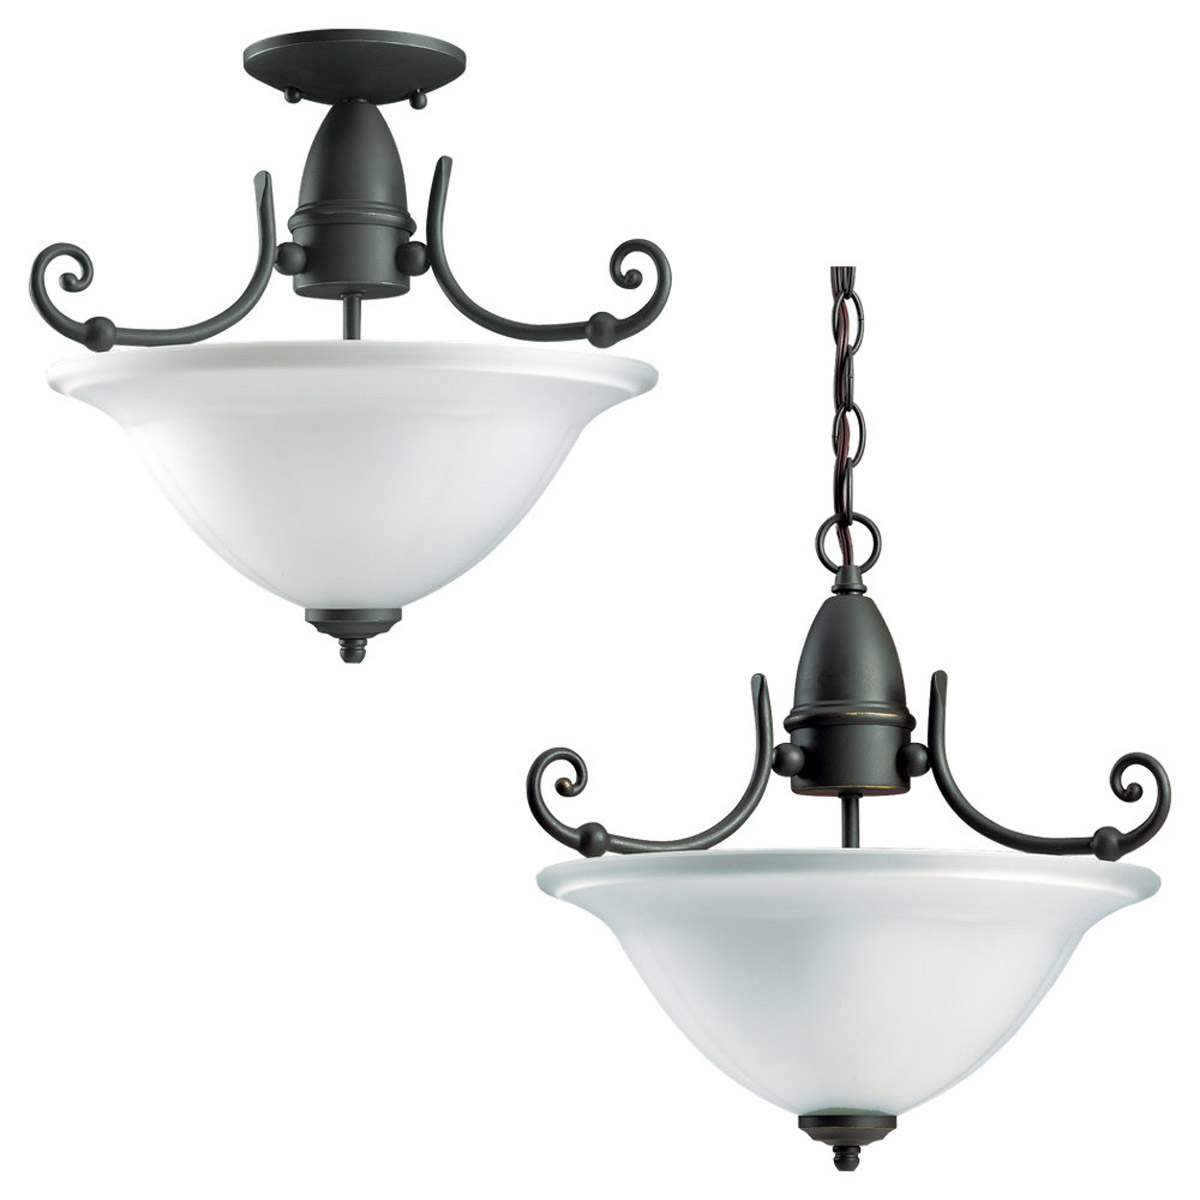 Sea Gull Lighting Canterbury 1 Light Convertible Semi-Flush in Antique Bronze 59050BLE-71